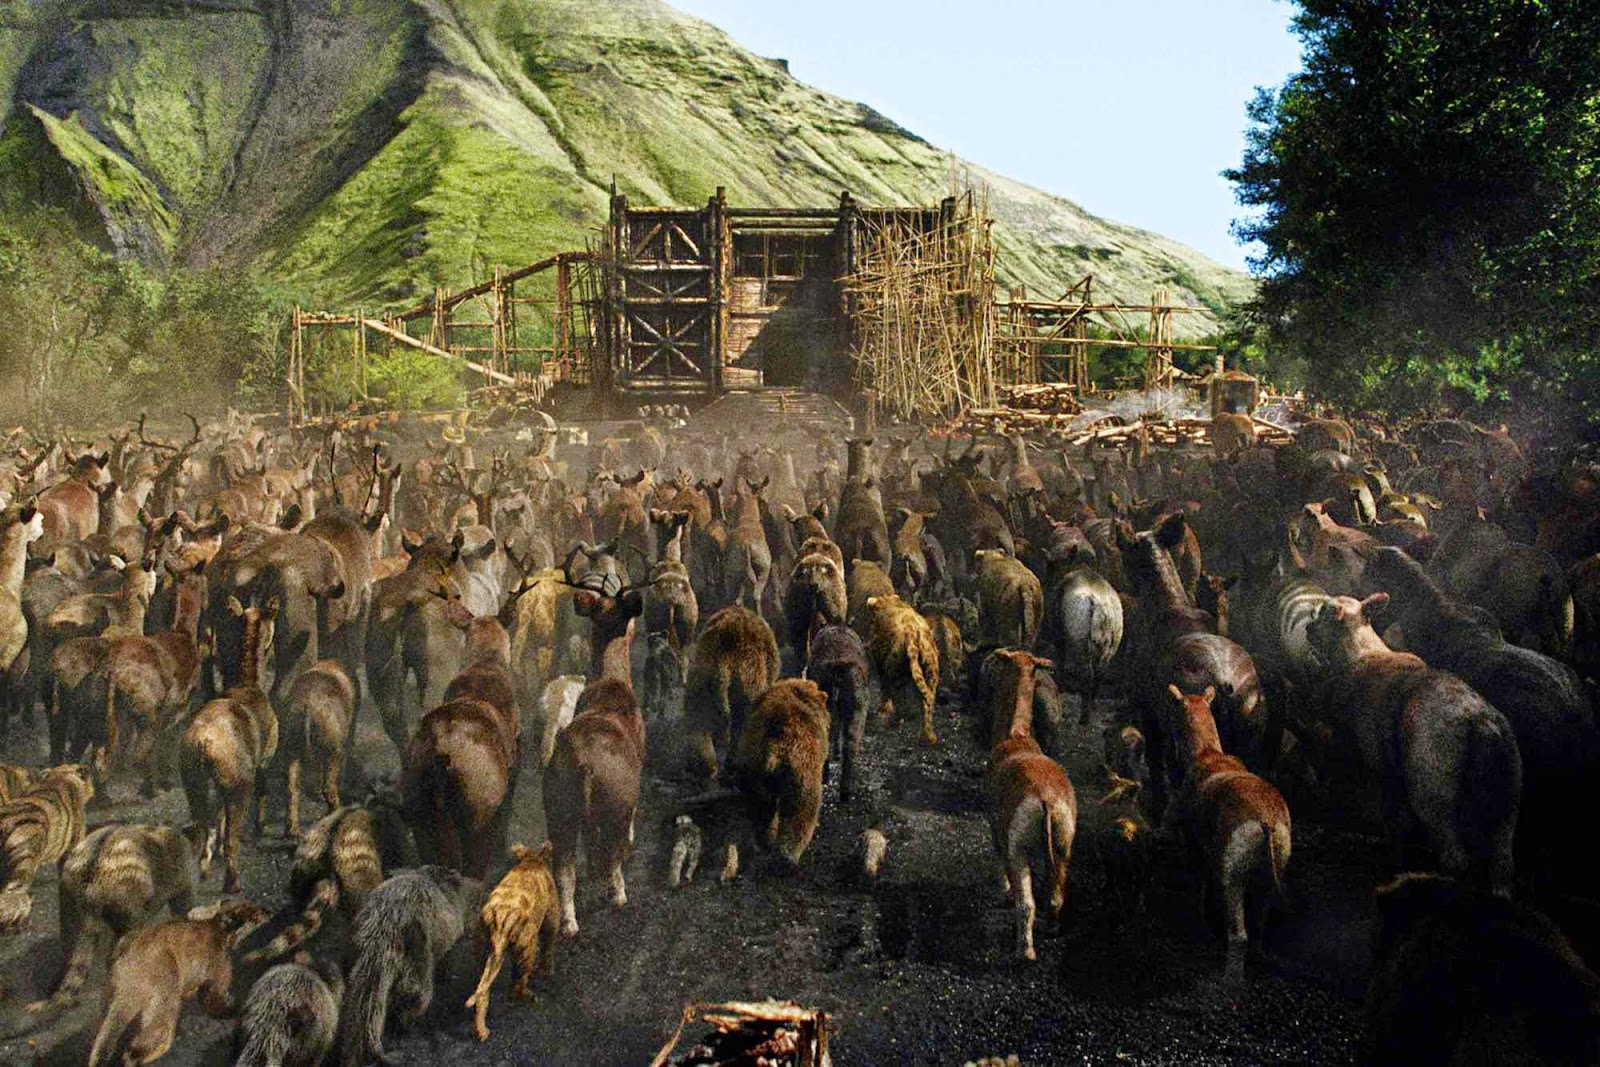 Noah - The Animals Arrive at the Ark | A Constantly Racing Mind